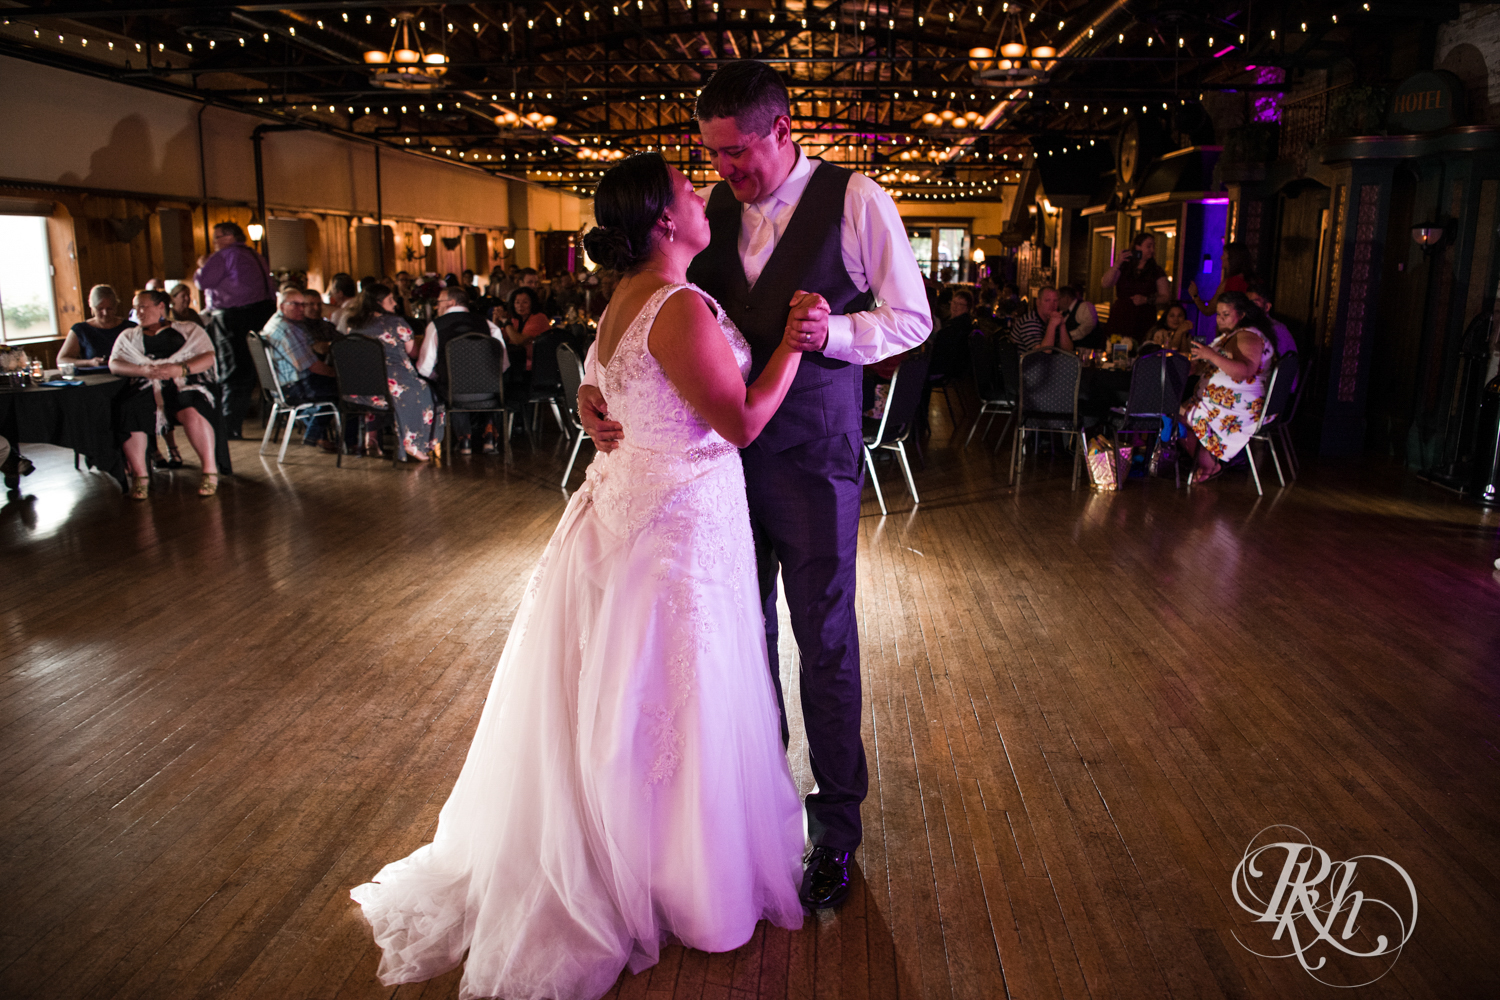 Jana and Paul - Minnesota Wedding Photography - Kellerman's Event Center - RKH Images  (64 of 77).jpg